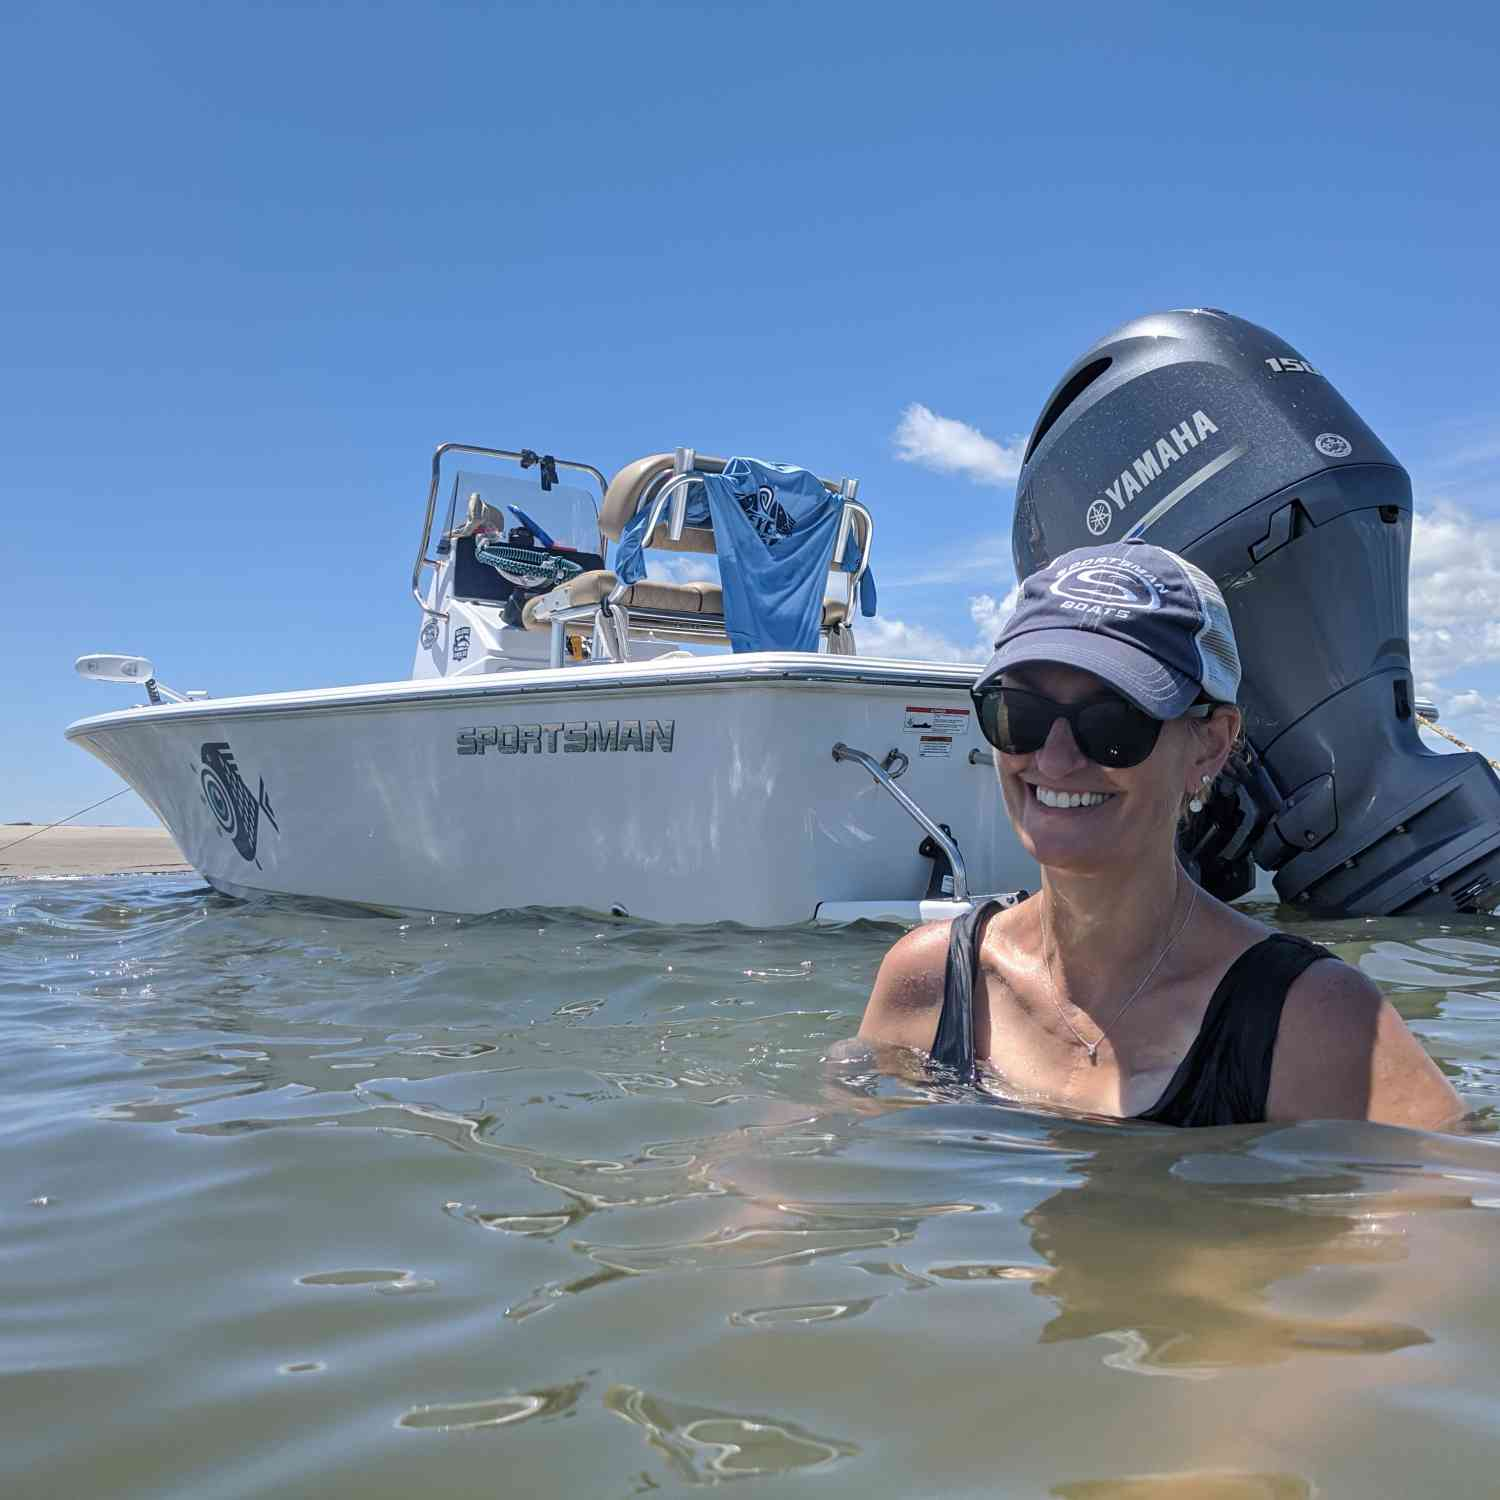 Title: Capers beachin - On board their Sportsman Masters 207 Bay Boat - Location: Capers Island SC. Participating in the Photo Contest #SportsmanAugust2020